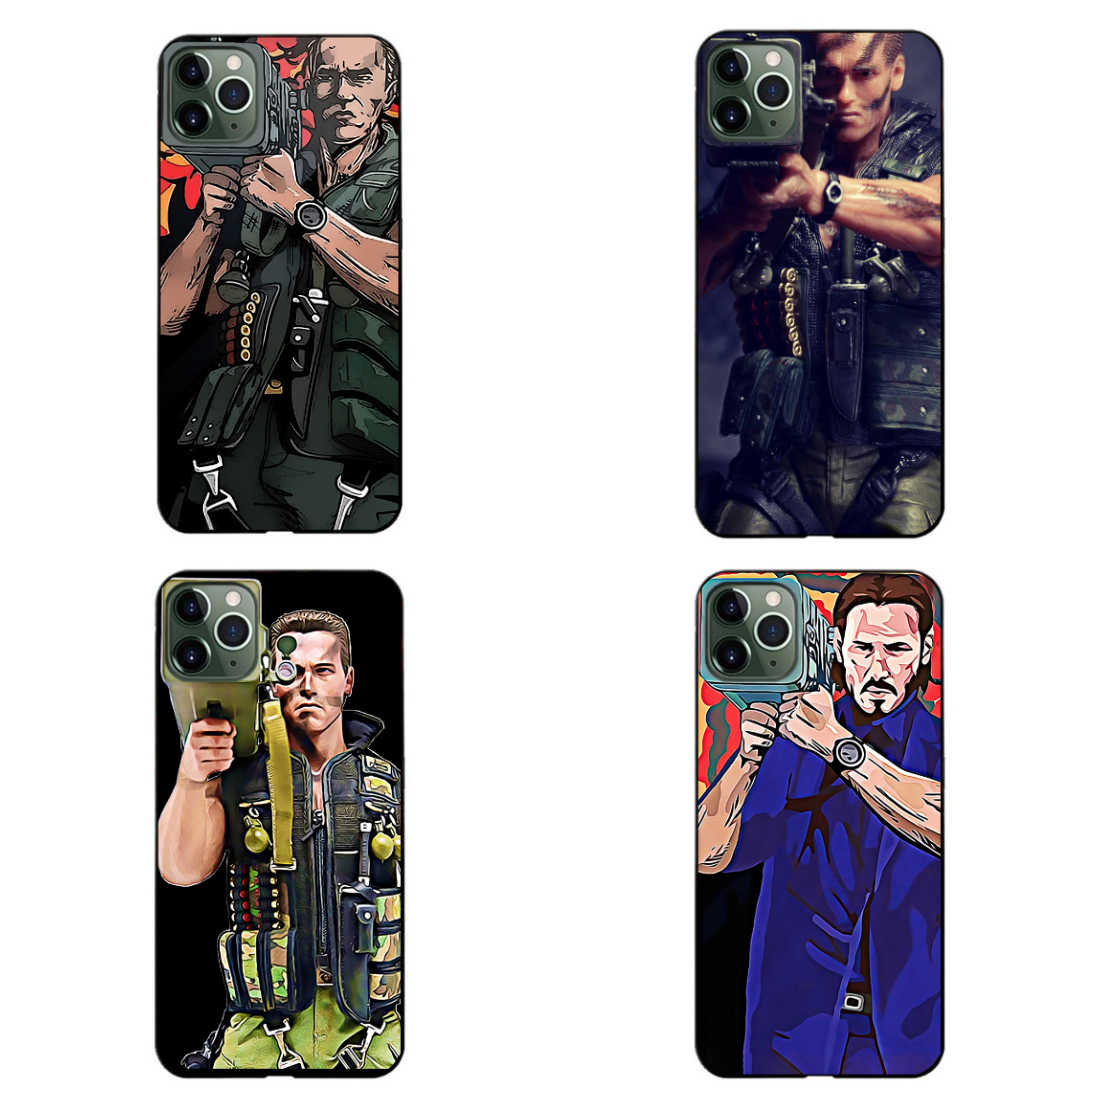 Arnold Schwarzenegger Grappige Rocket Telefoon Case Silicone Black Sotf TPU Cover voor iphone 11Pro MAX 6 6s 7 8plus 5s X XS XR XSMax